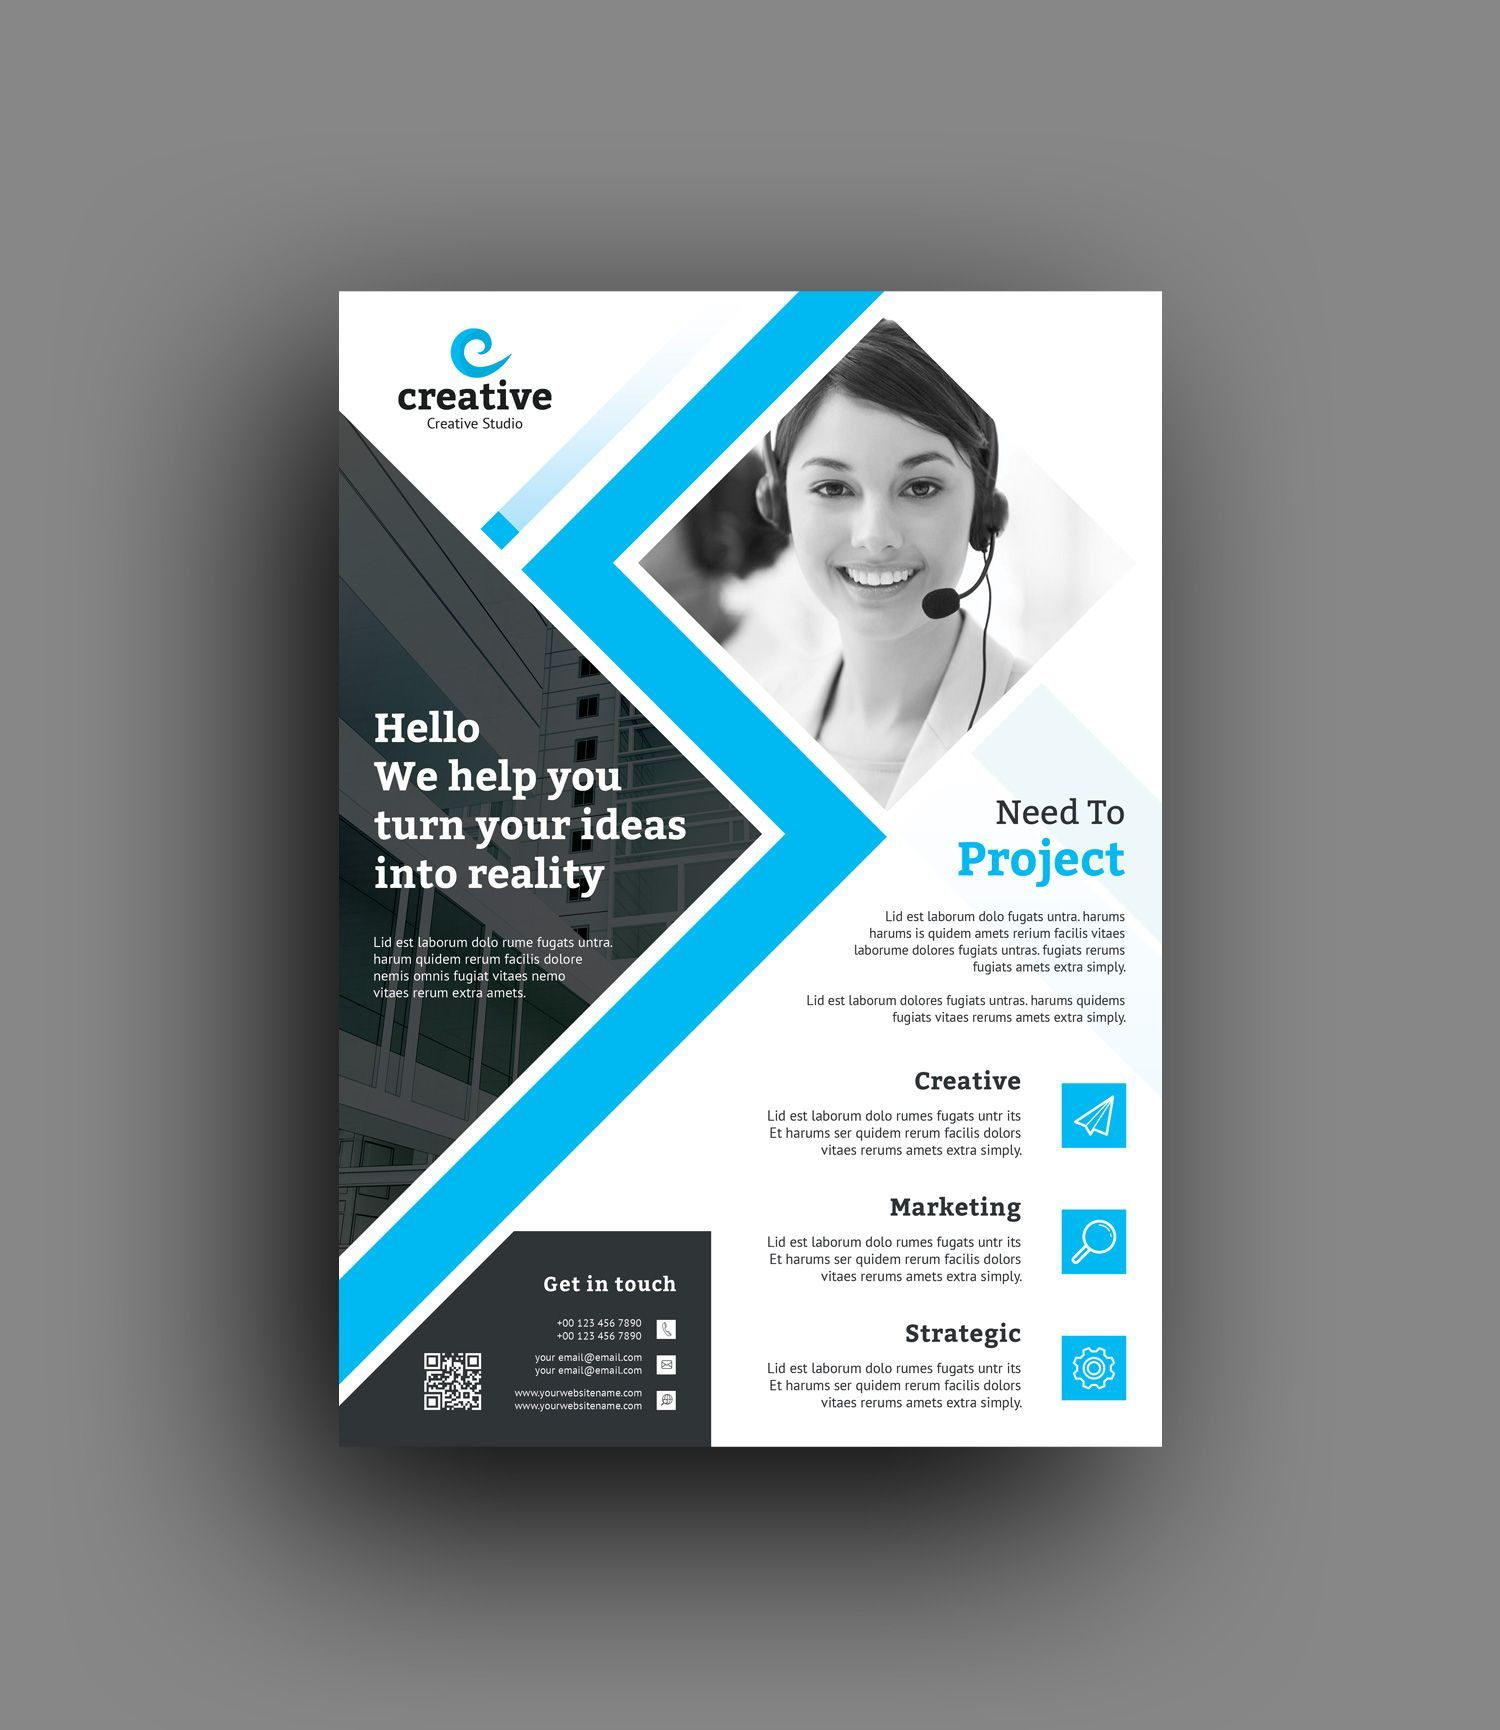 002 Singular In Design Flyer Template High Resolution  Templates Indesign Free For Mac EventFull